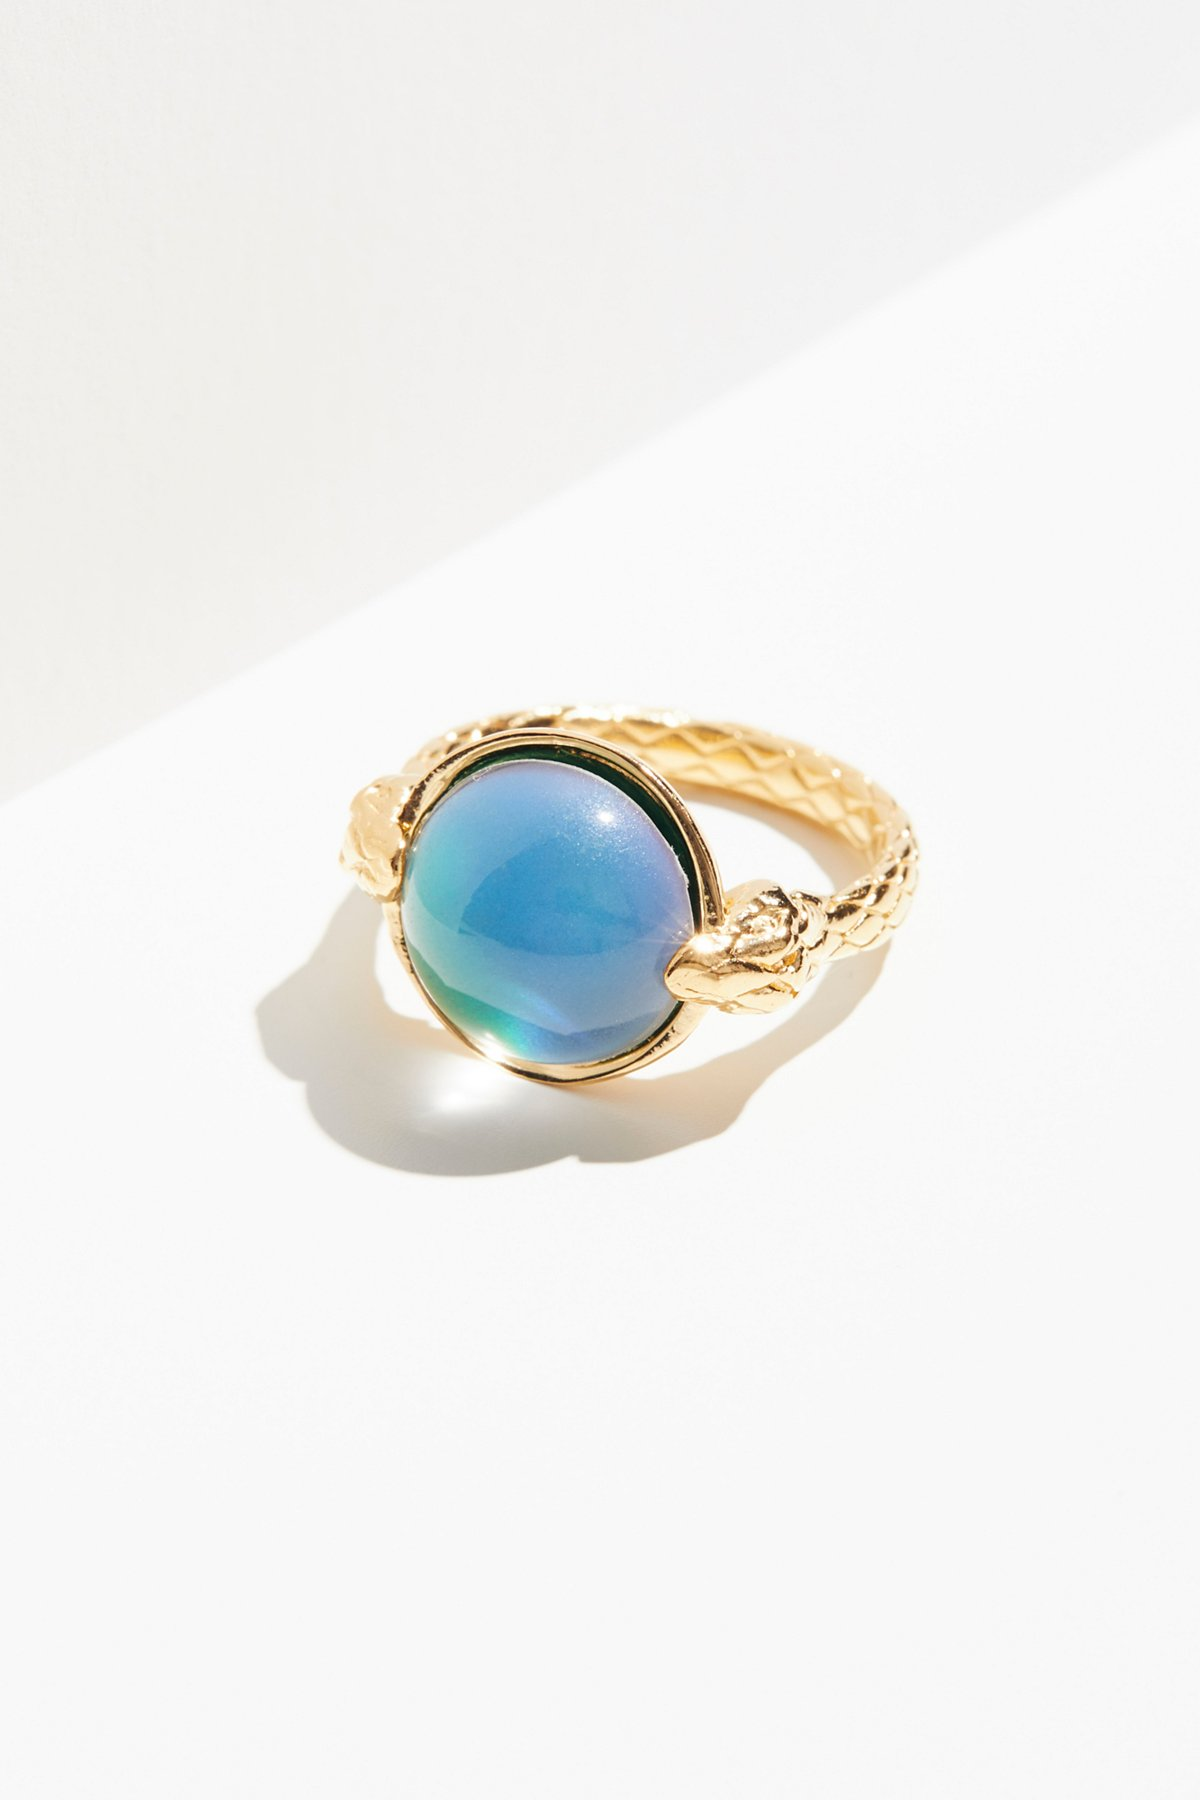 Moody Blues Mood Ring